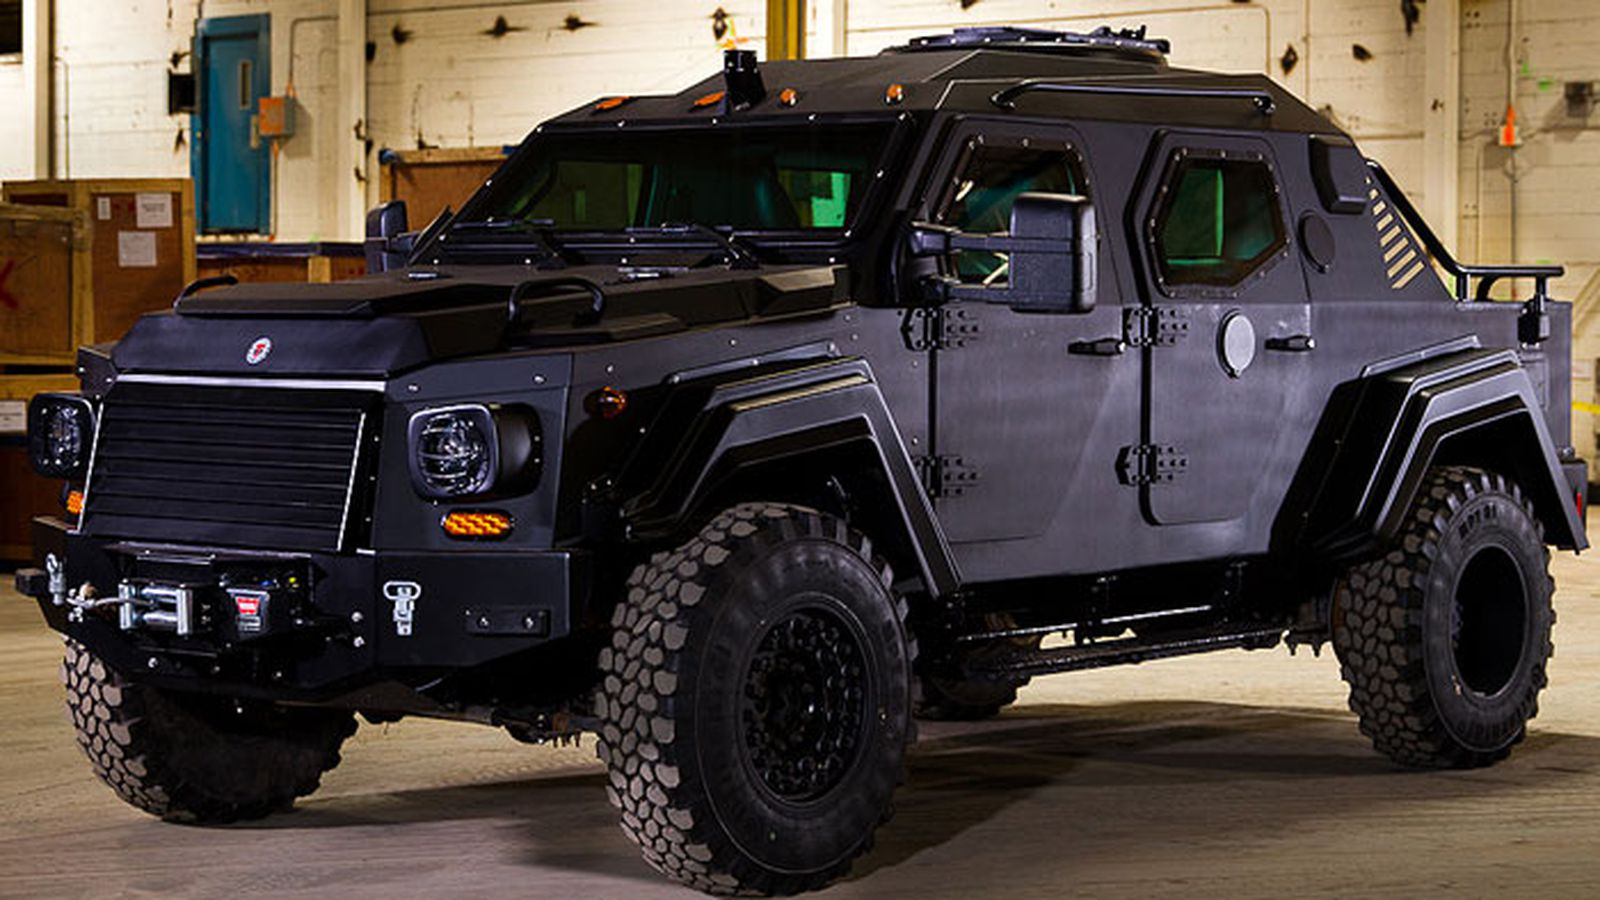 Six Door Truck For Sale >> J.R. Smith is now driving an armored military vehicle - SBNation.com